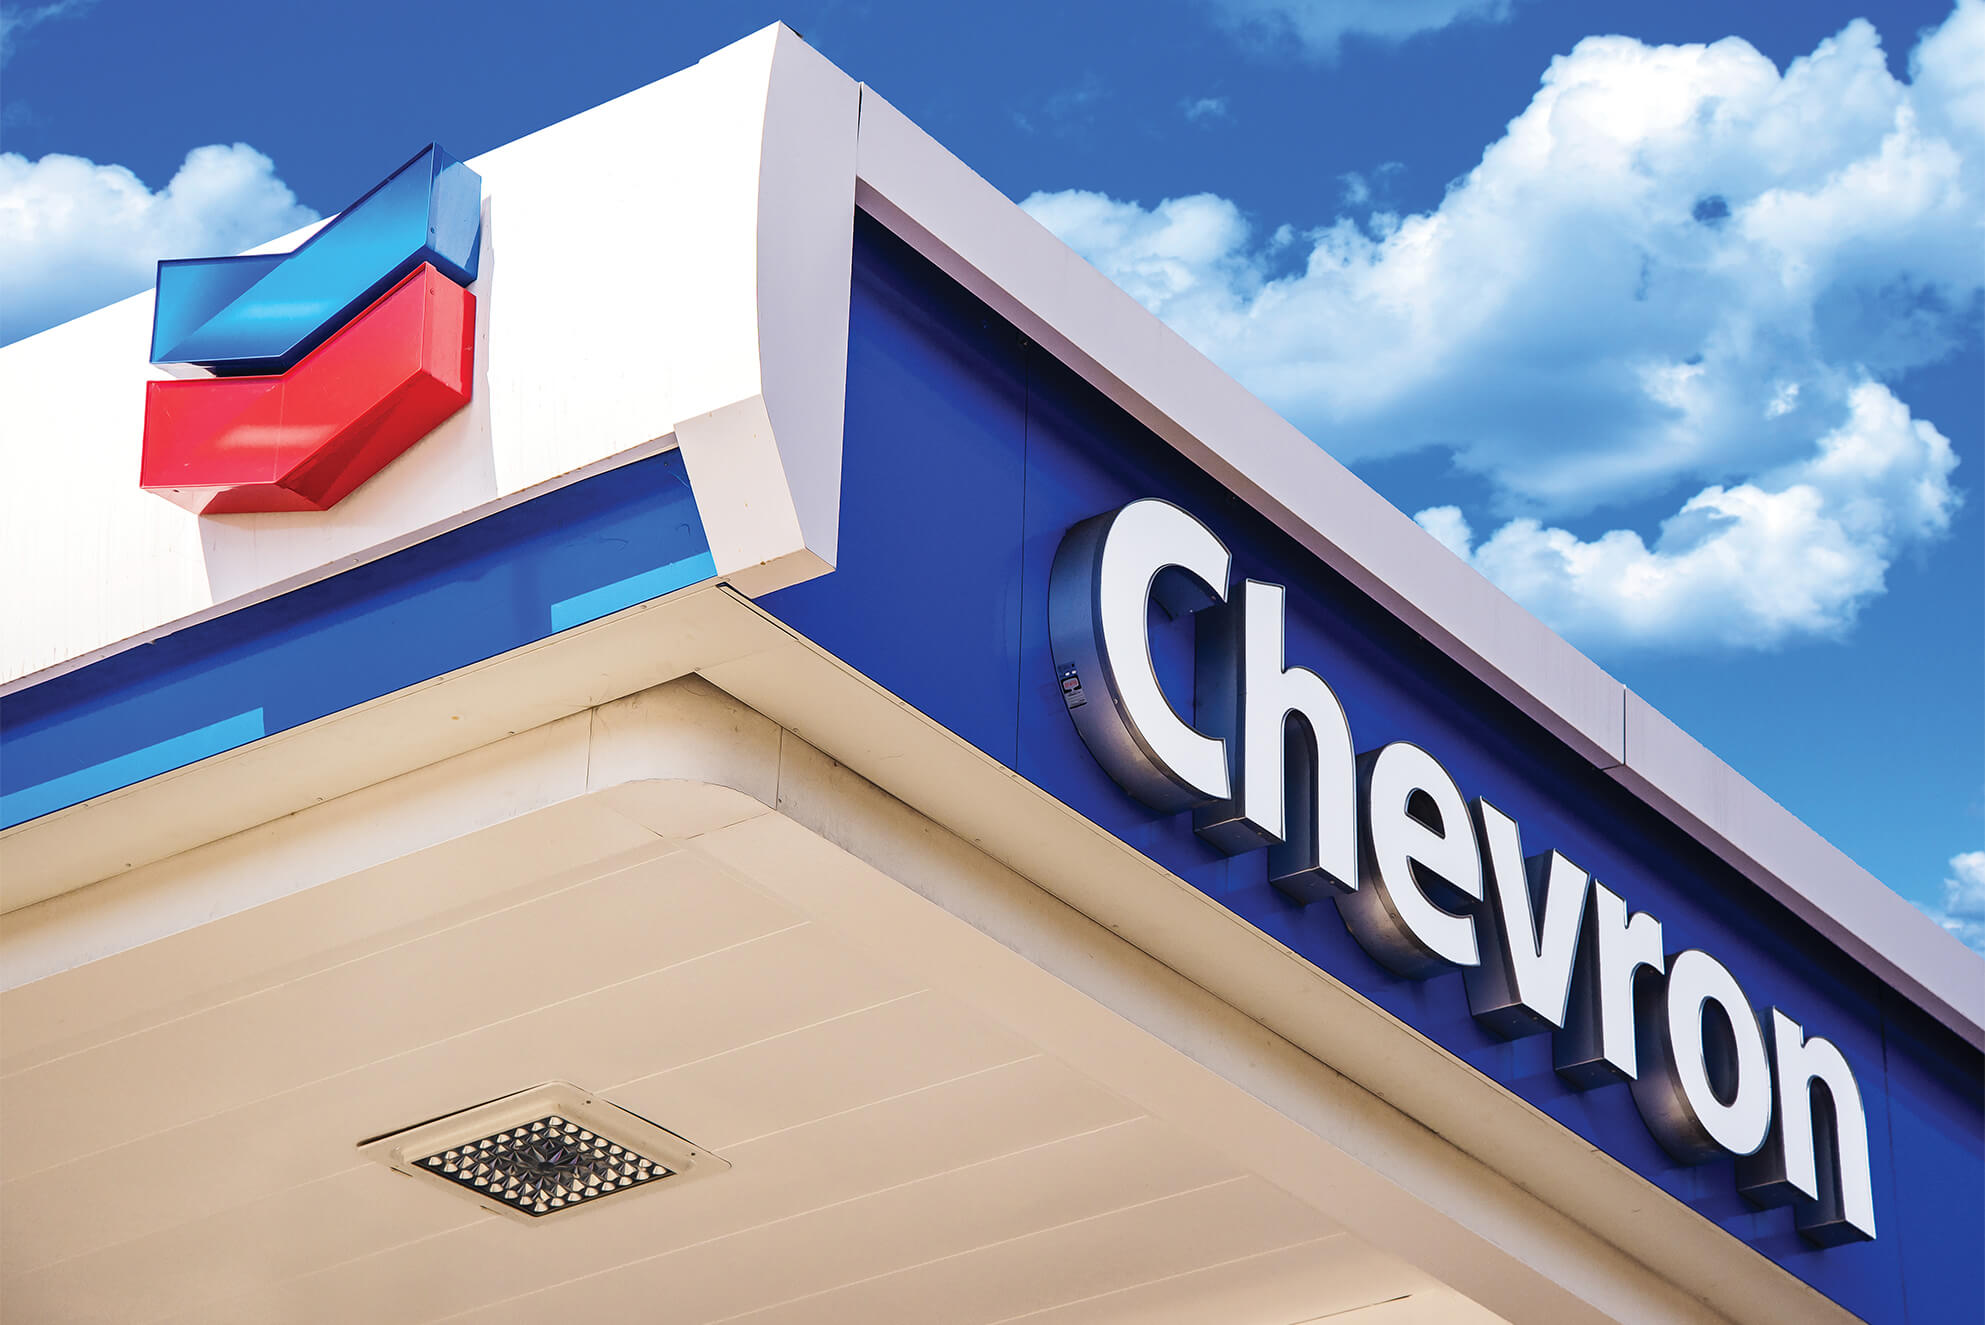 Canopy signage made for one of several Chevron locations.